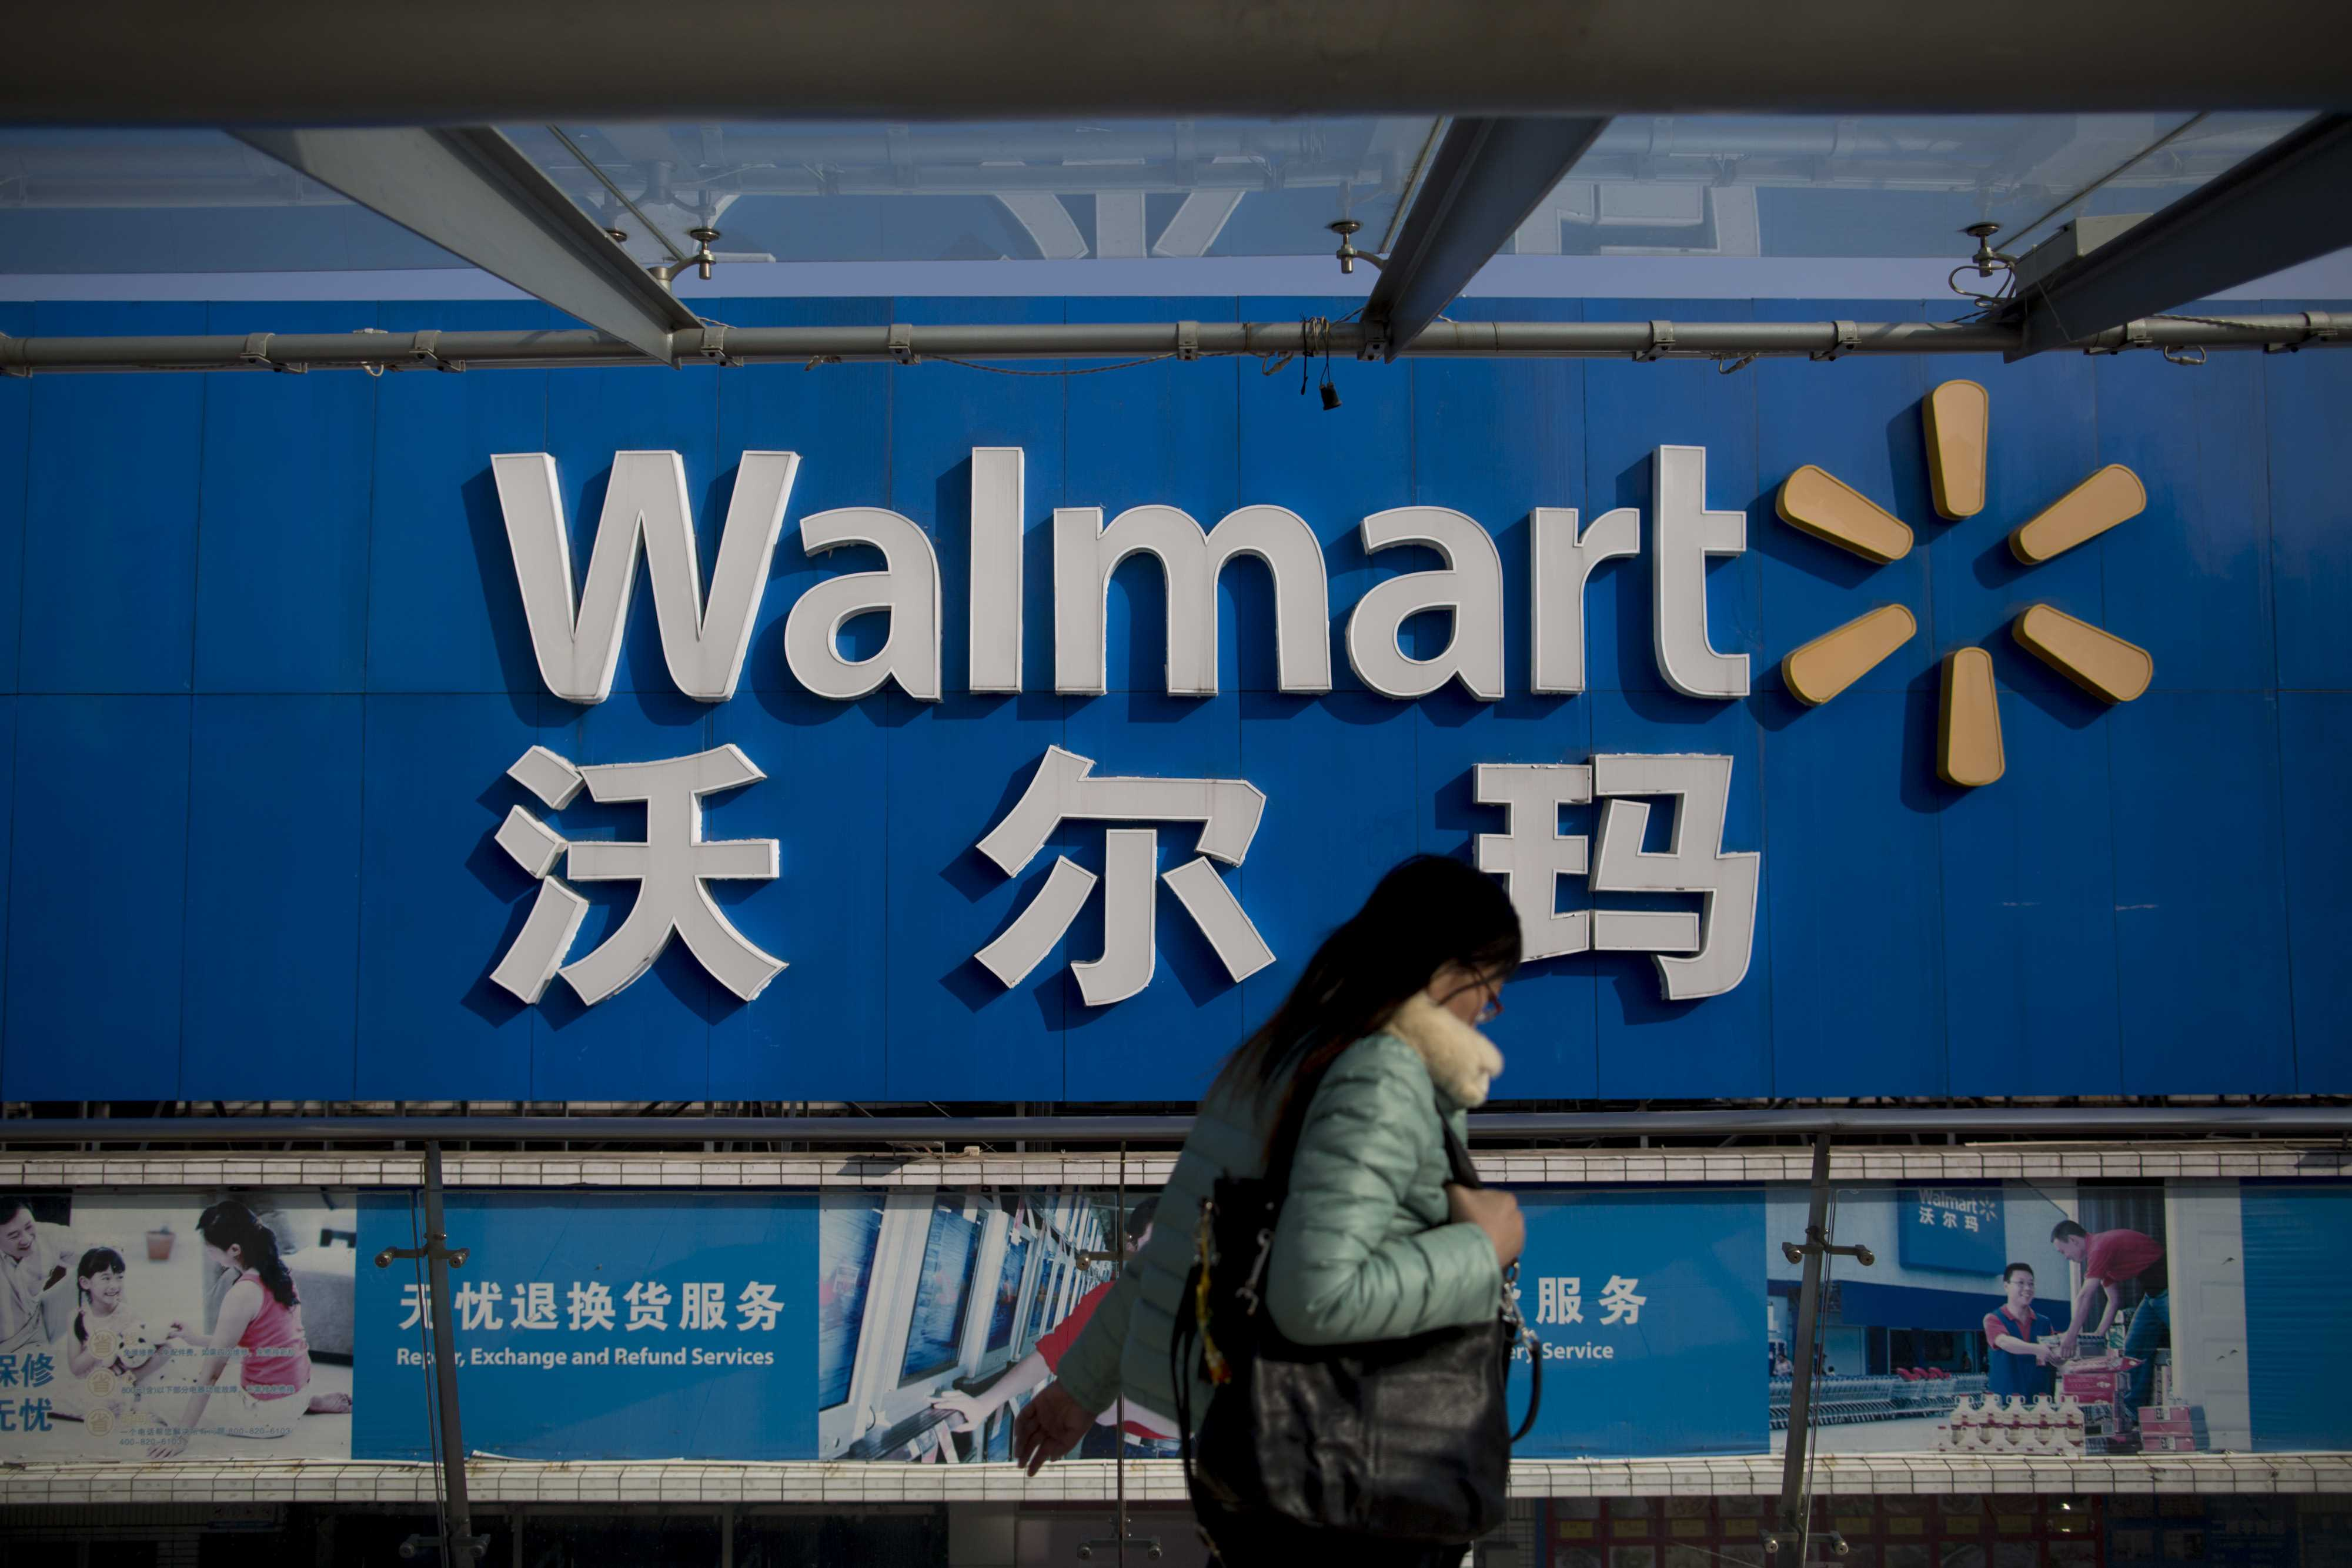 wal marts foreign expansion Walmart failed to understand china's here's why walmart stumbled on the road to to improve the practice of global business and to make better global expansion.